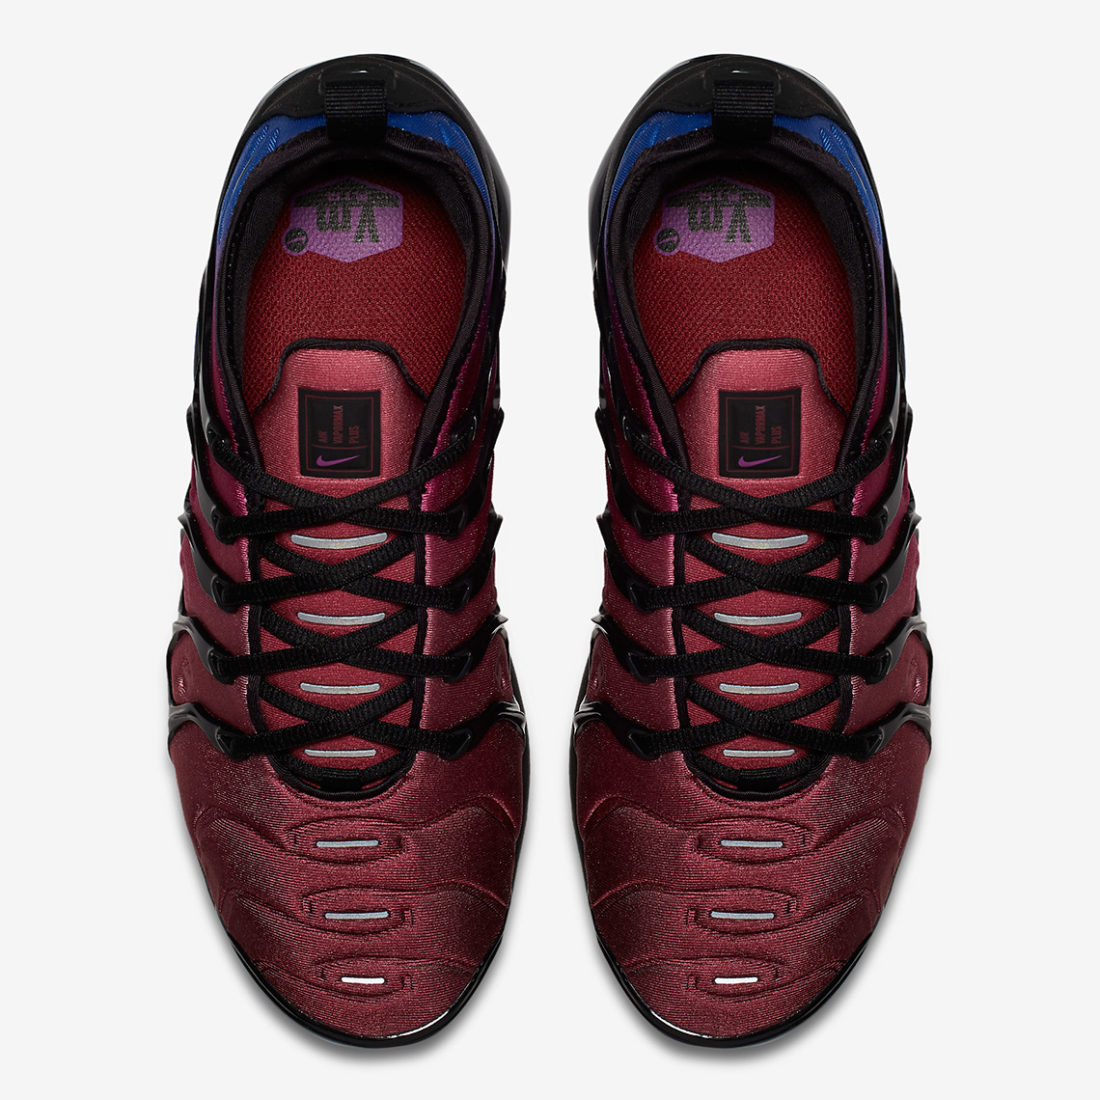 658eef34b6 Nike Air VaporMax Plus Black Team Red Violet - Le Site de la Sneaker